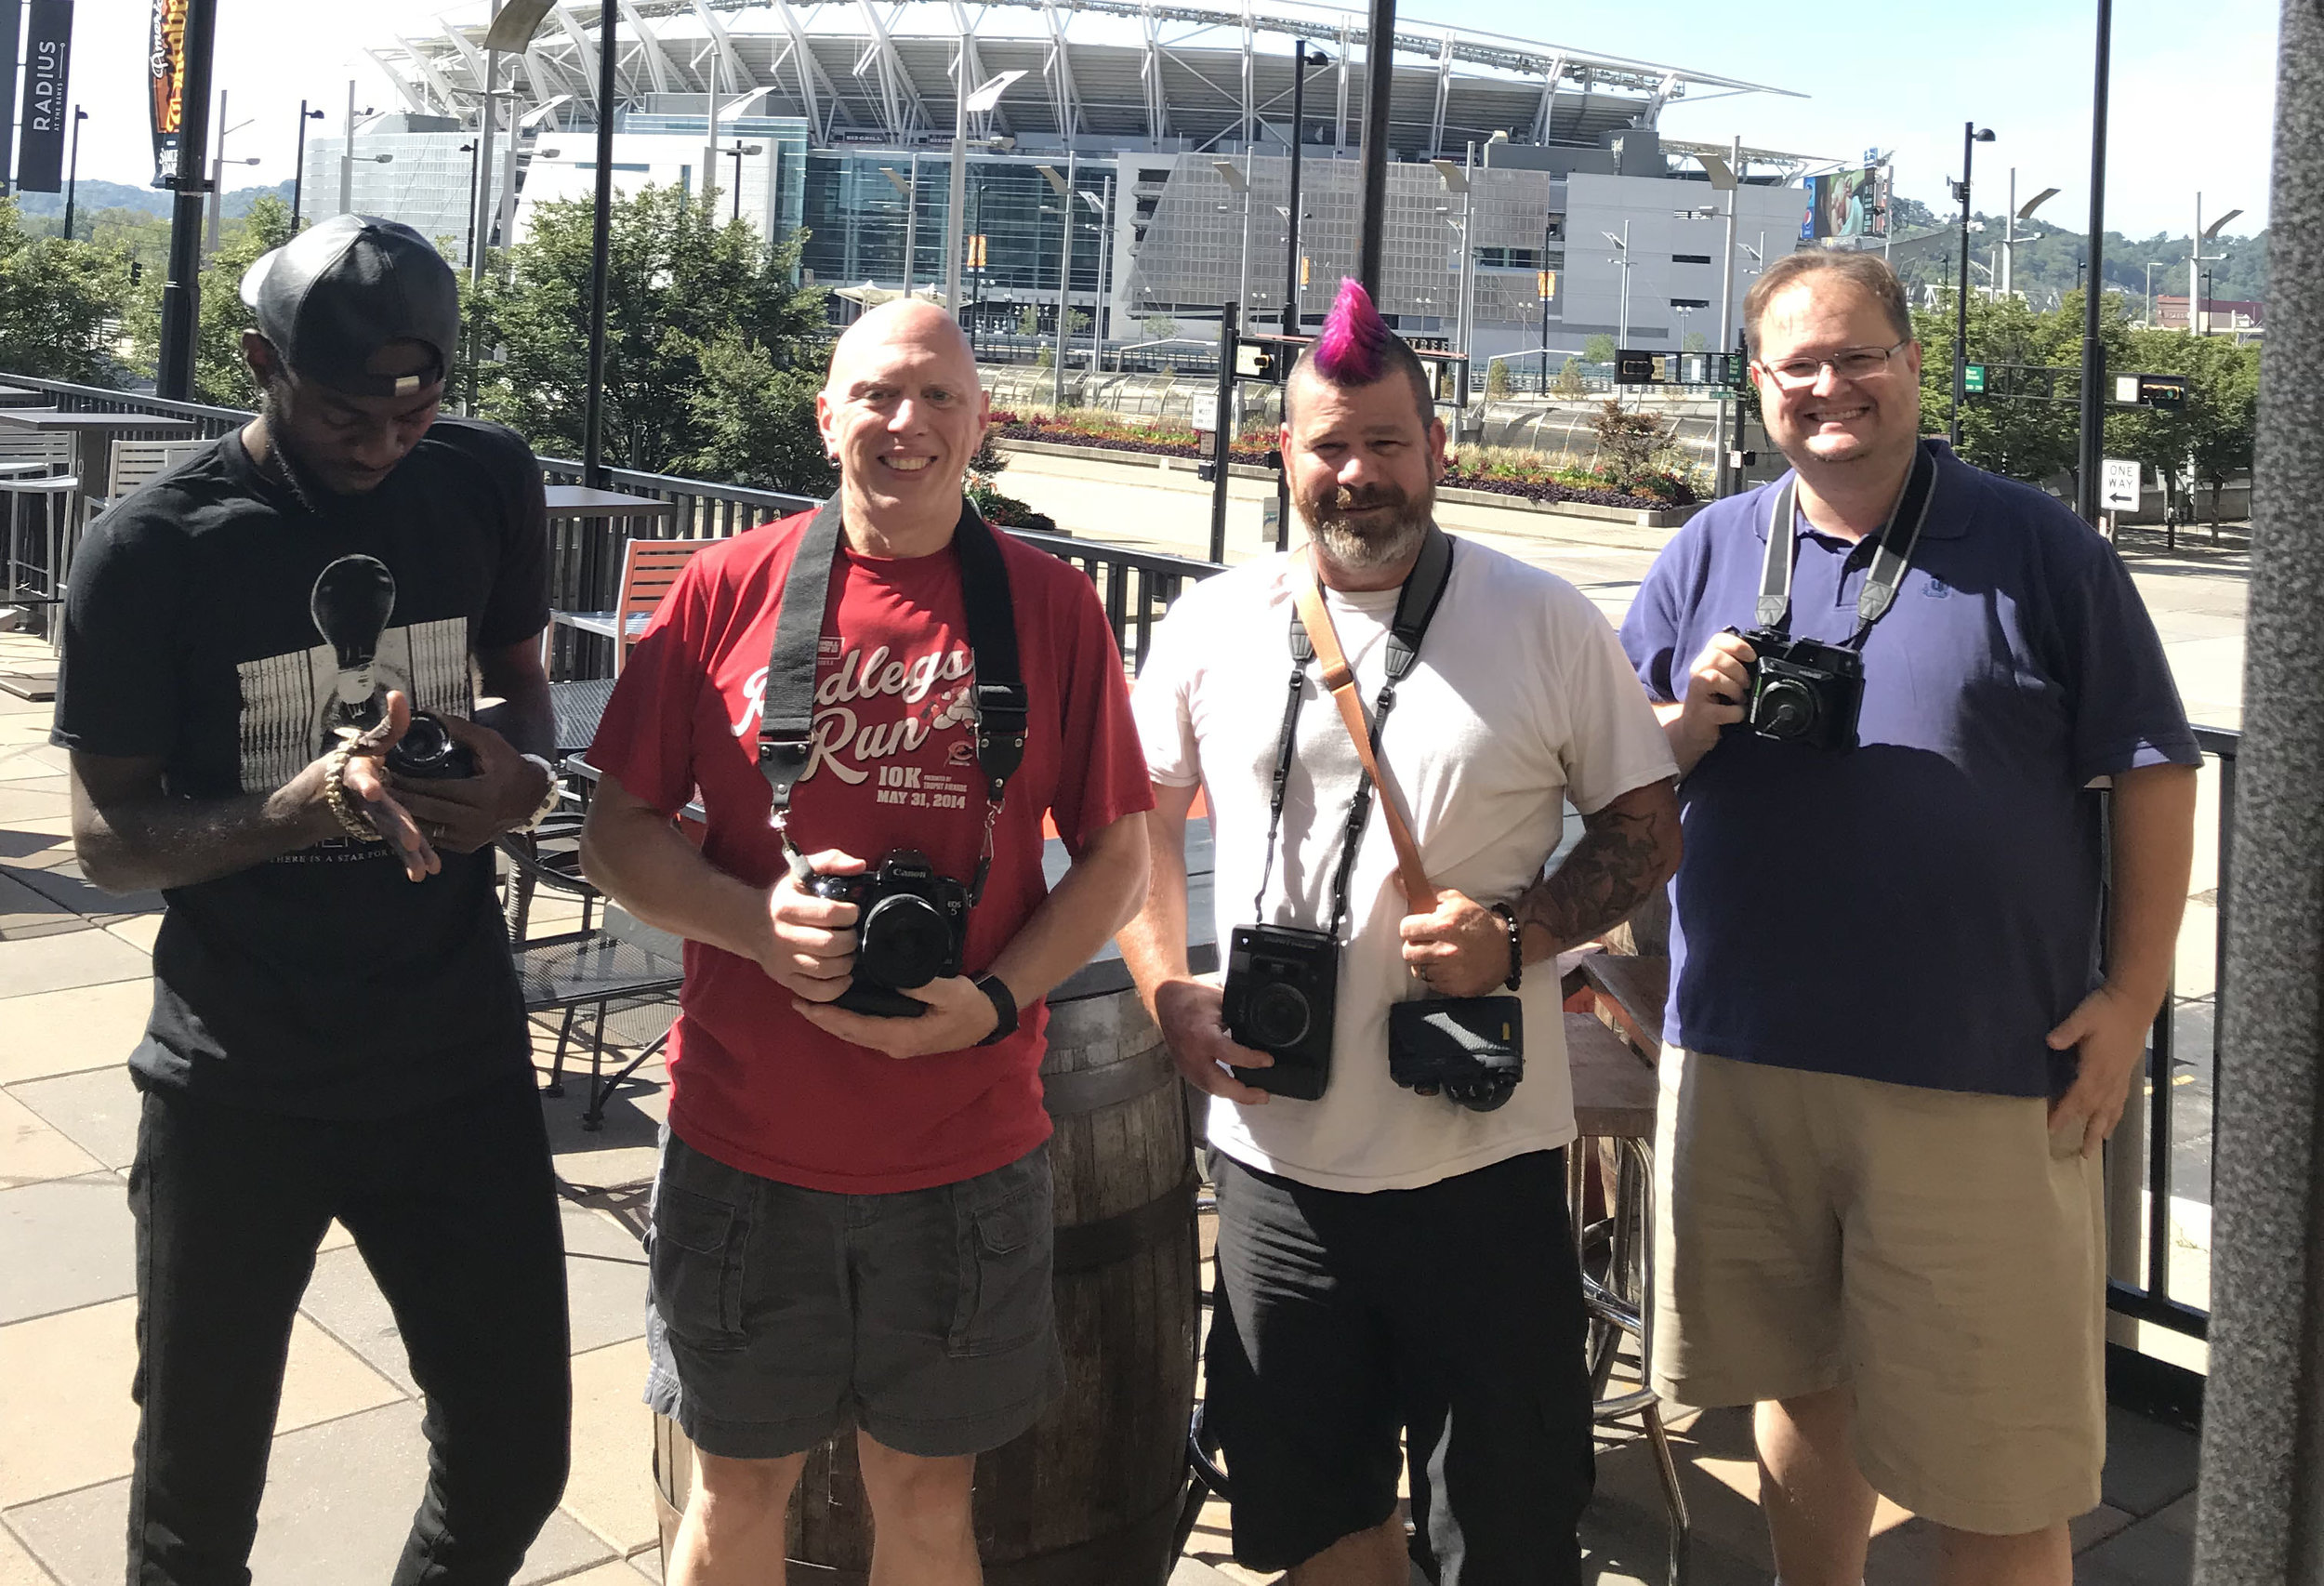 The first photowalk crew: starting from the left, Edmund, Myself, Shawn, and Austin. (Photo by Sam Warner)